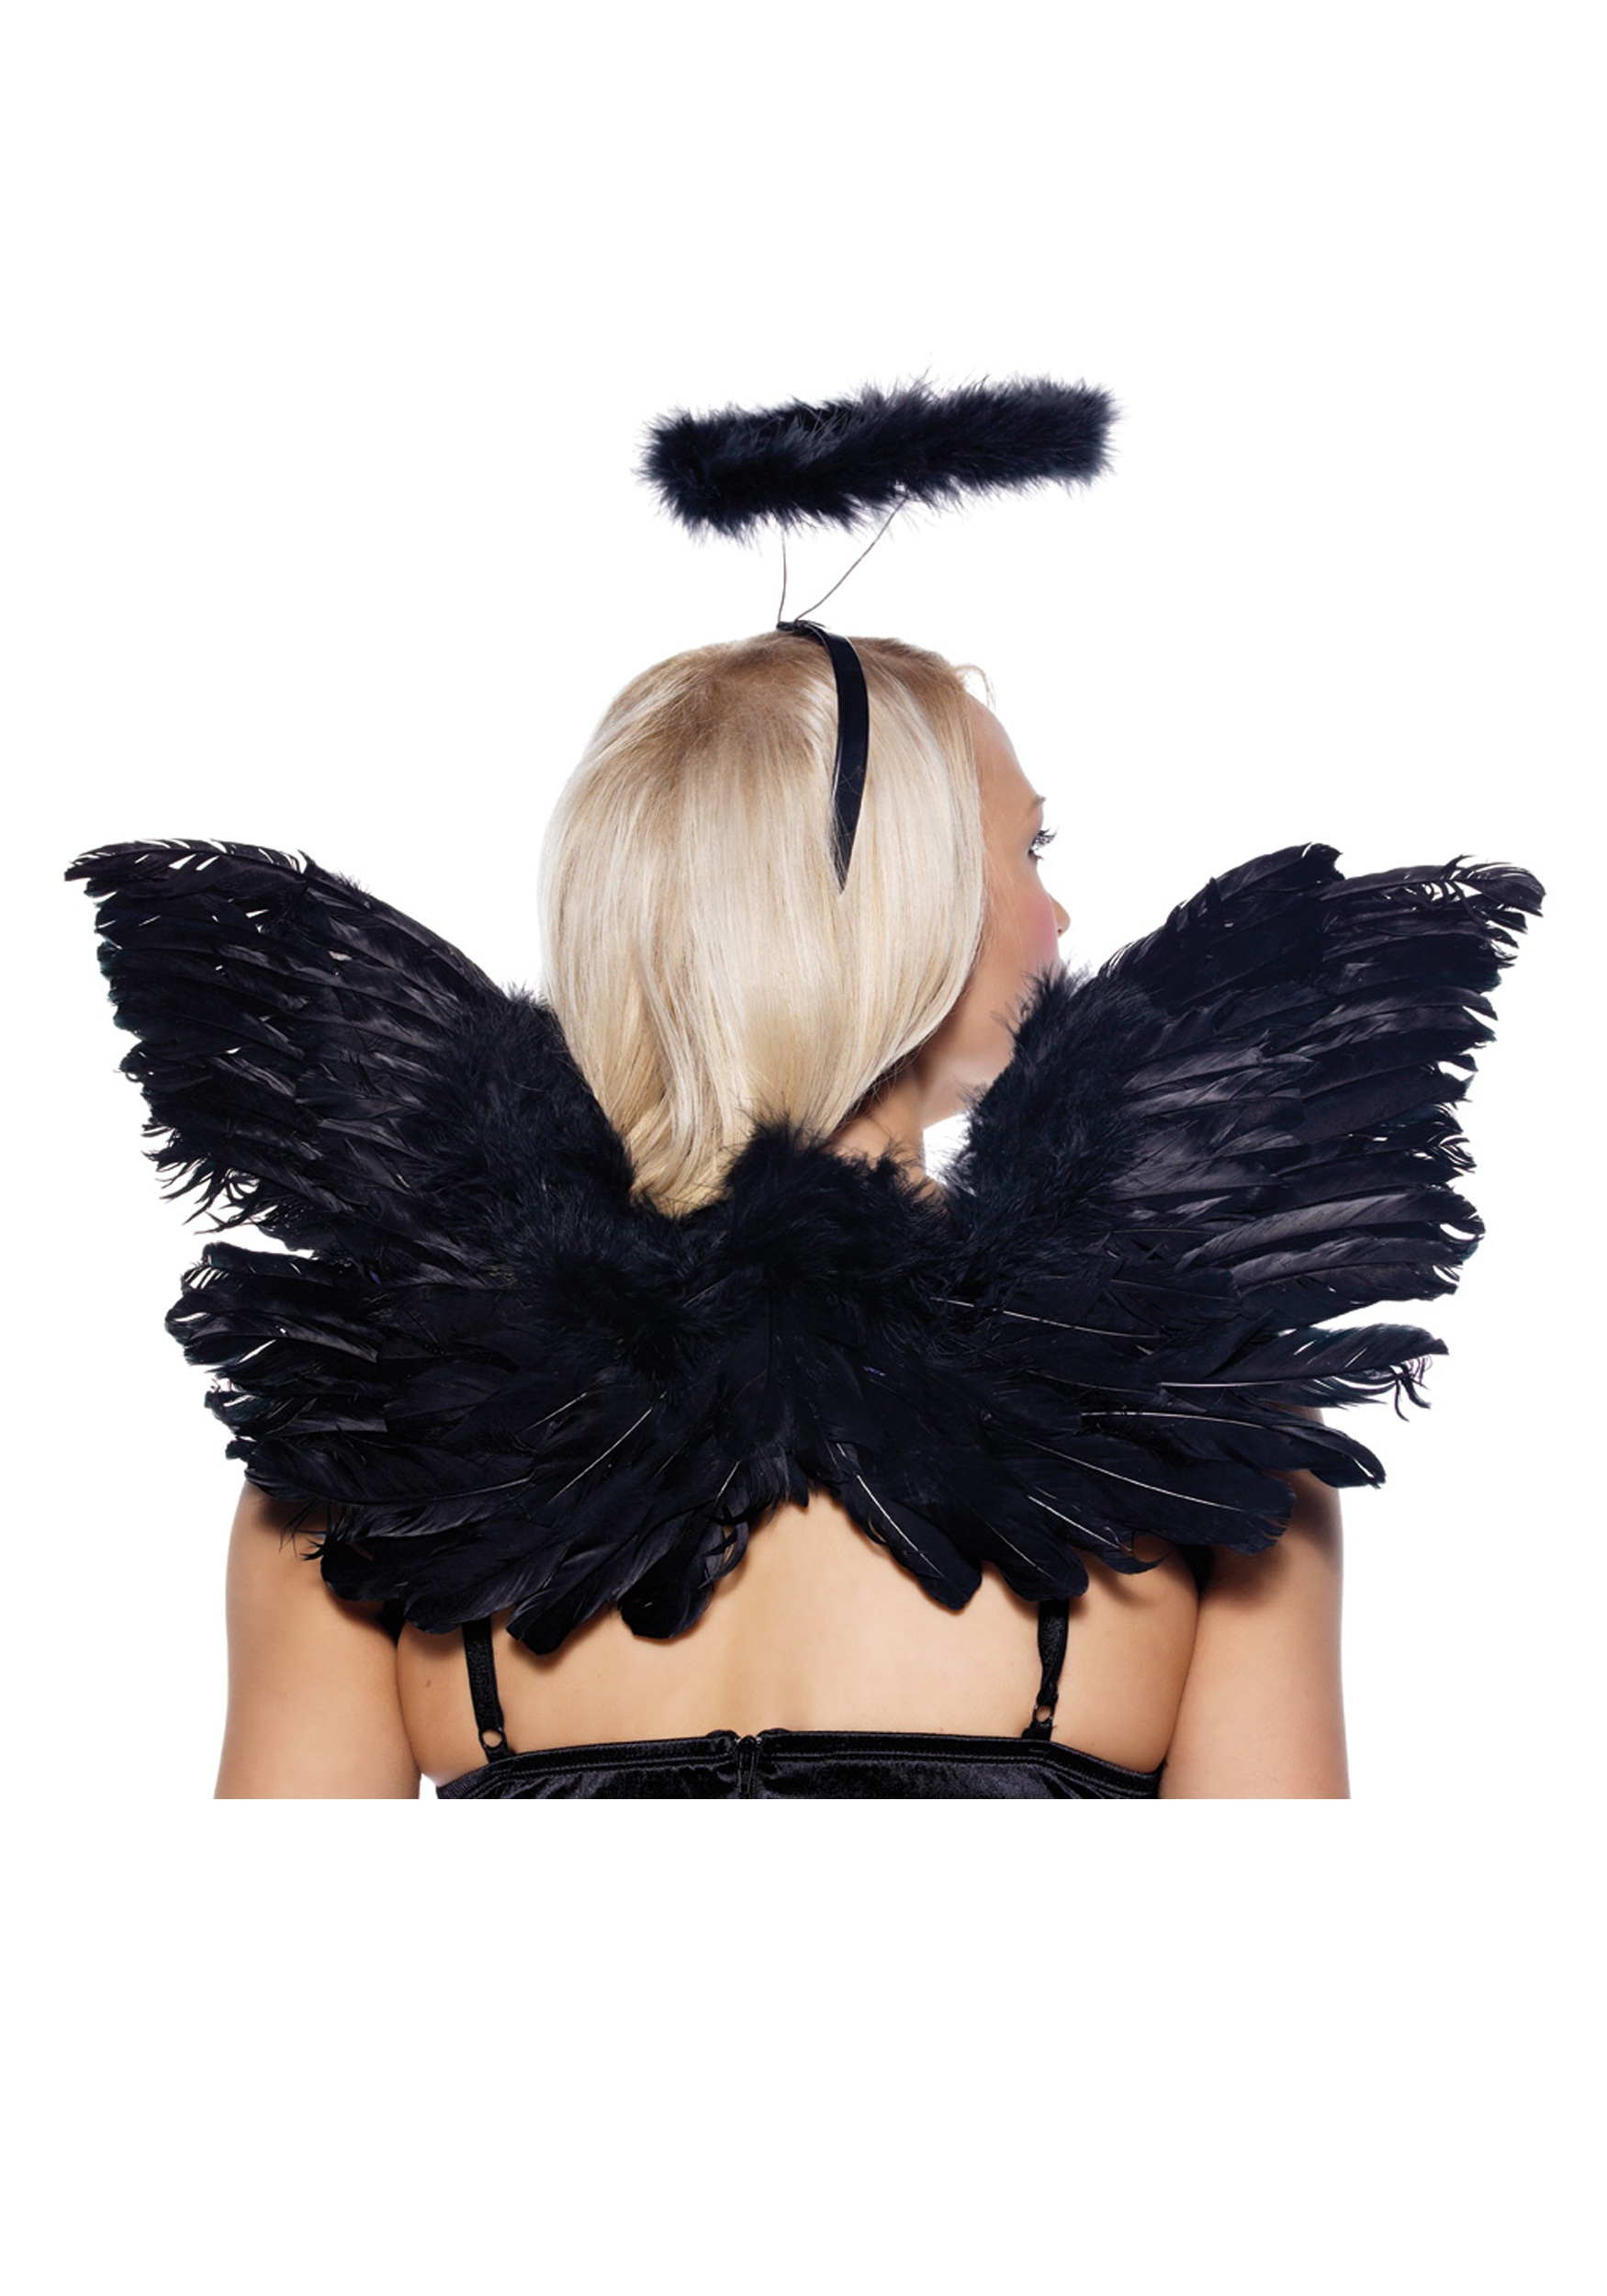 Black Angel Wings and Halo - Fallen Angel Costumes